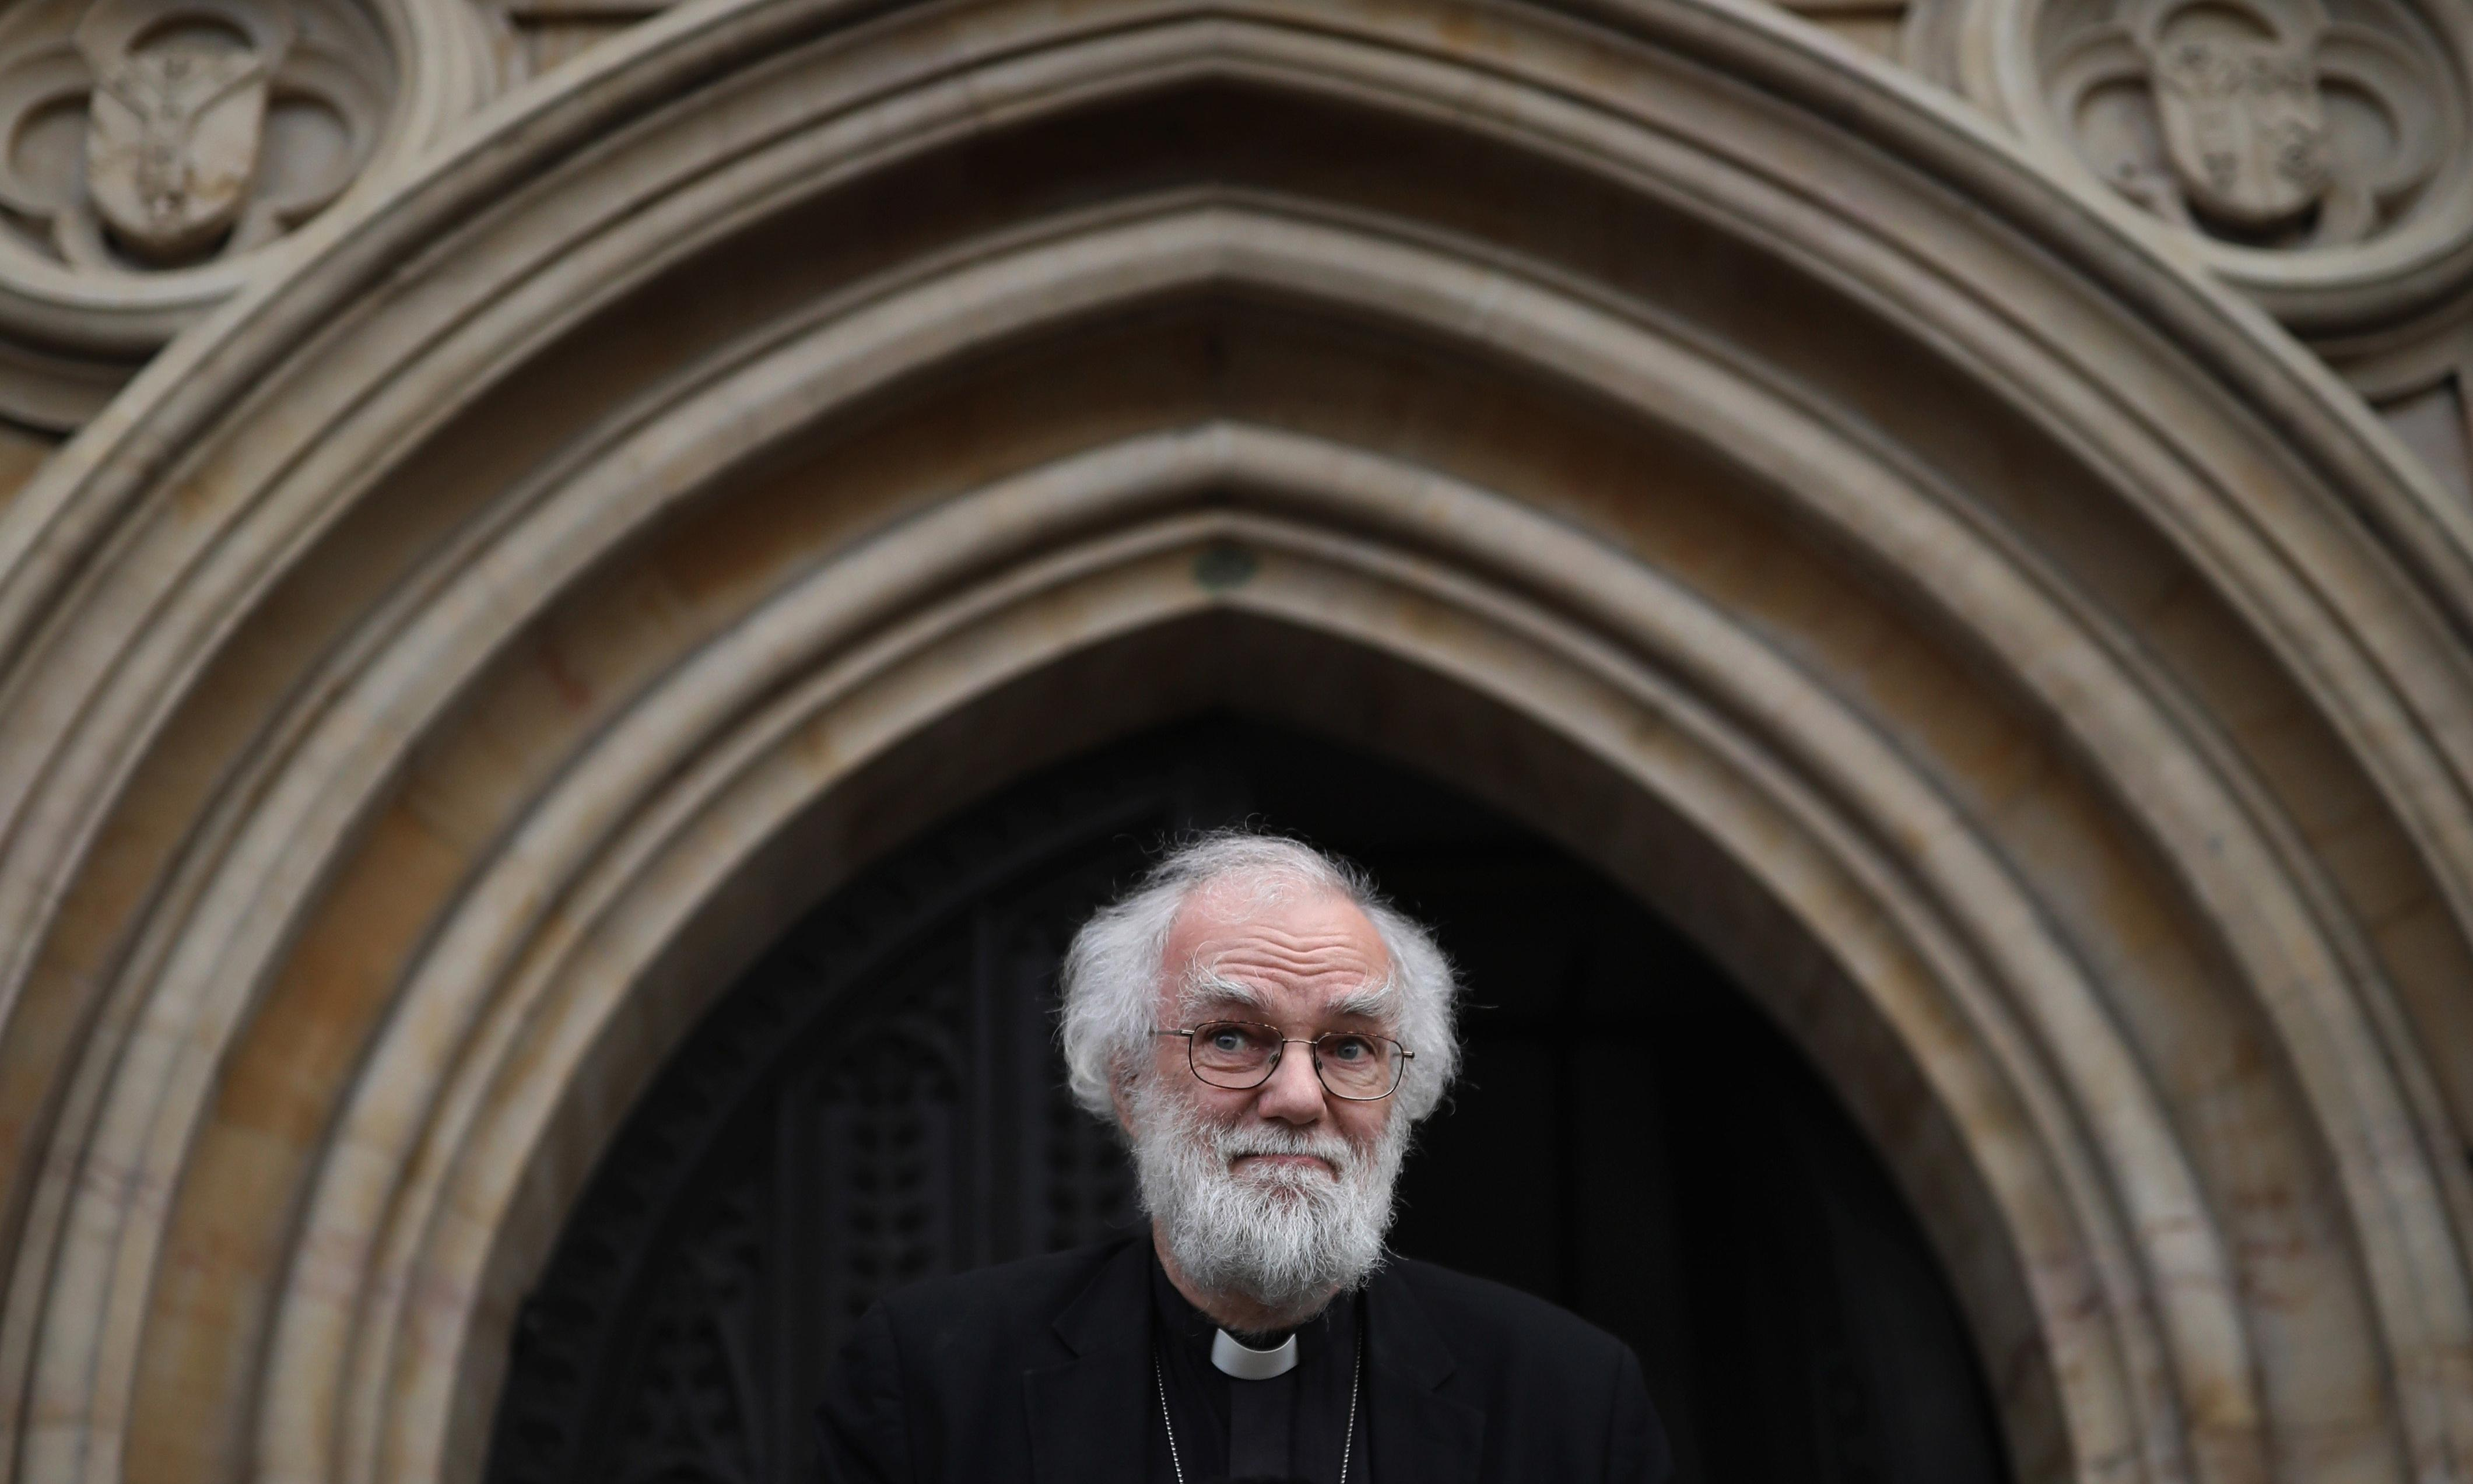 As the bookseller said to the archbishop